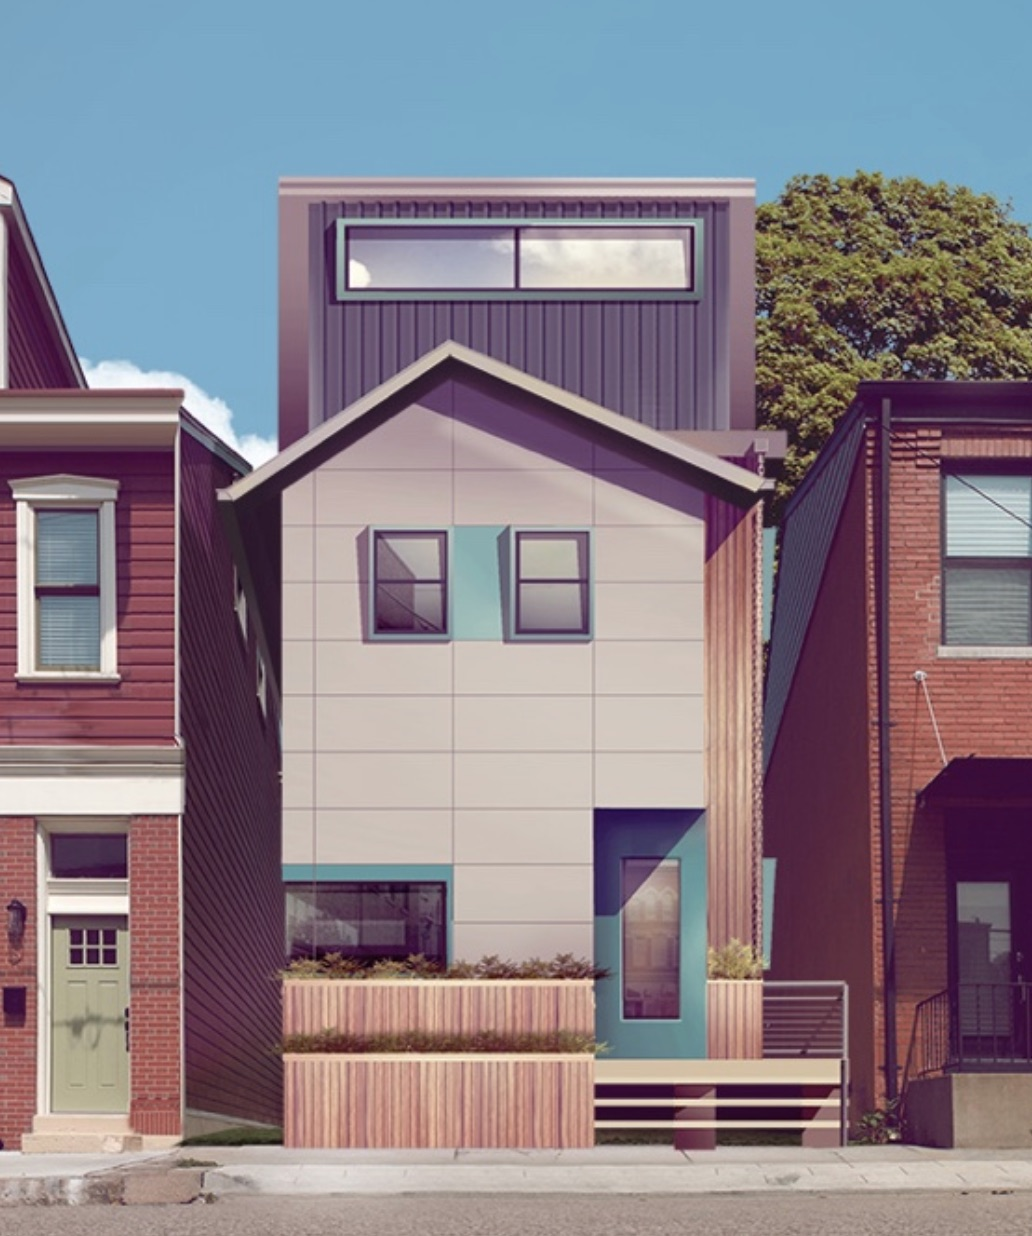 urban home design. Pittsburgh Startup Module Designs Urban Homes With Energy Saving  Sustainable Design Features PA Environment Digest Blog